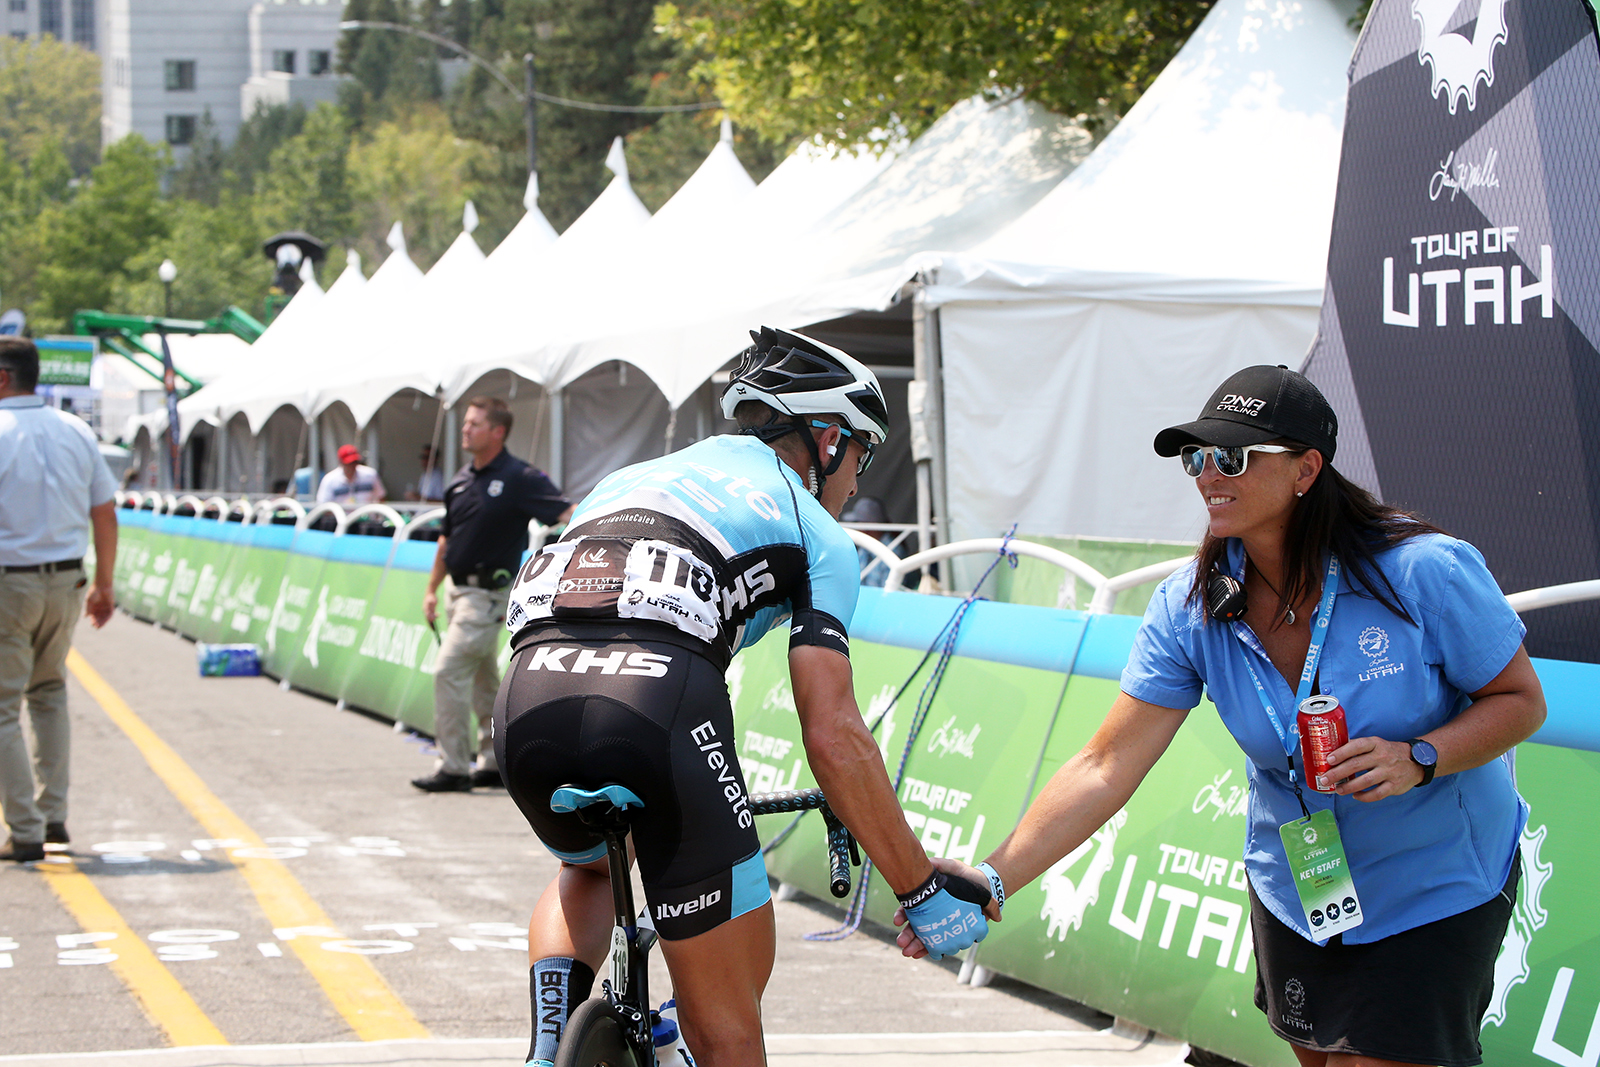 Brian McCulloh of Elevate KHS high fives ToU Executive Director, Jenn Andrs. 2018 Tour of Utah Stage 4, August 8, 2018, Salt Lake City, Utah. Photo by Cathy Fegan-Kim, cottonsoxphotography.net